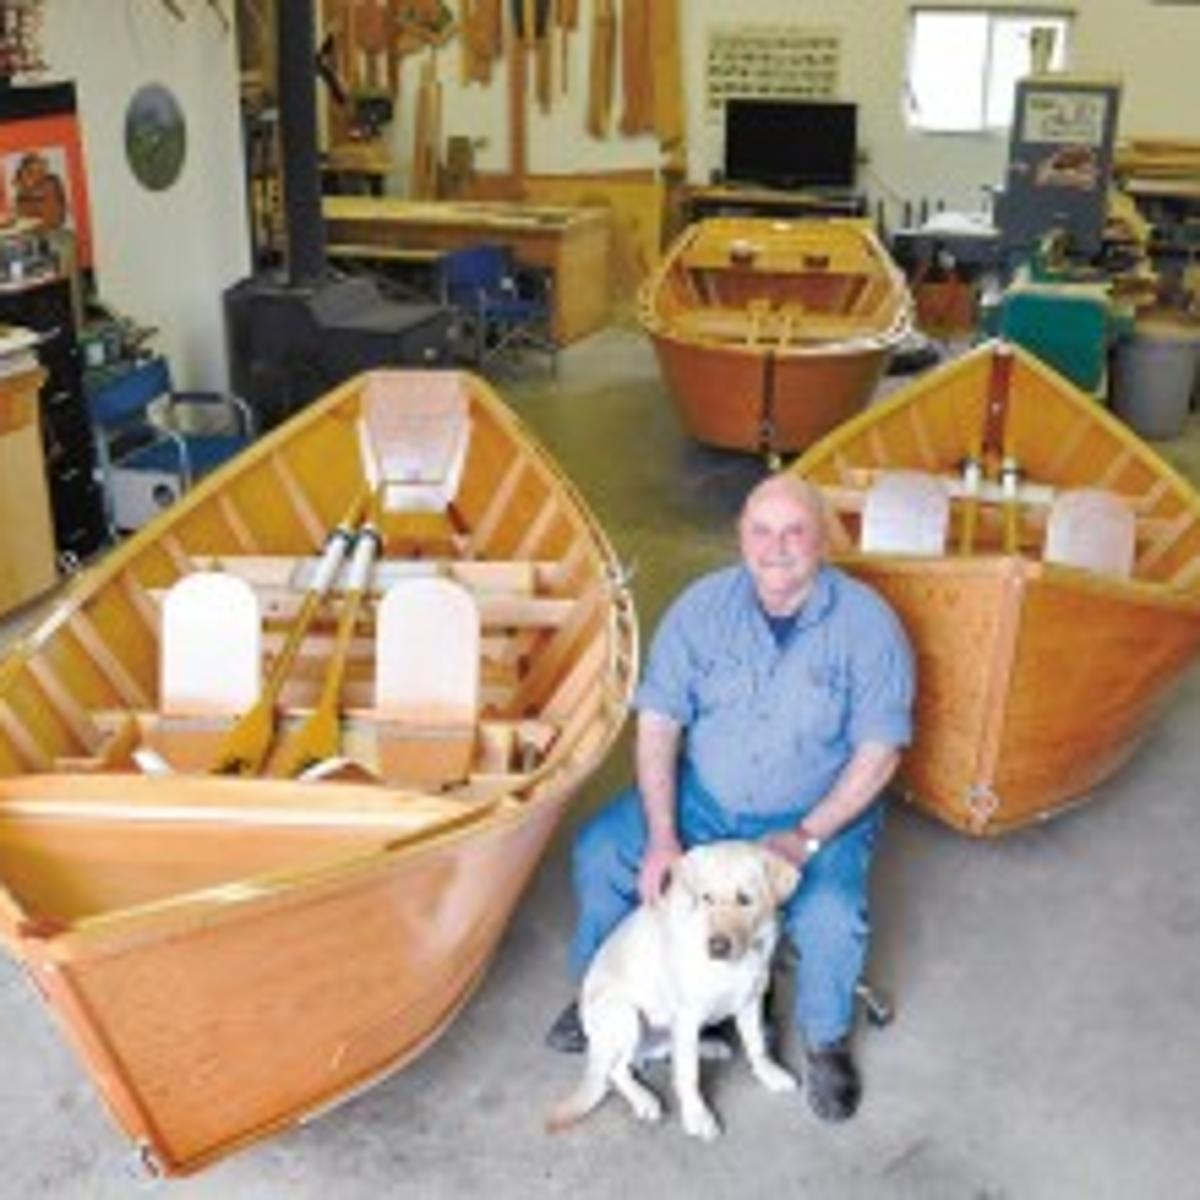 Steele again building traditional wooden river boats his father made